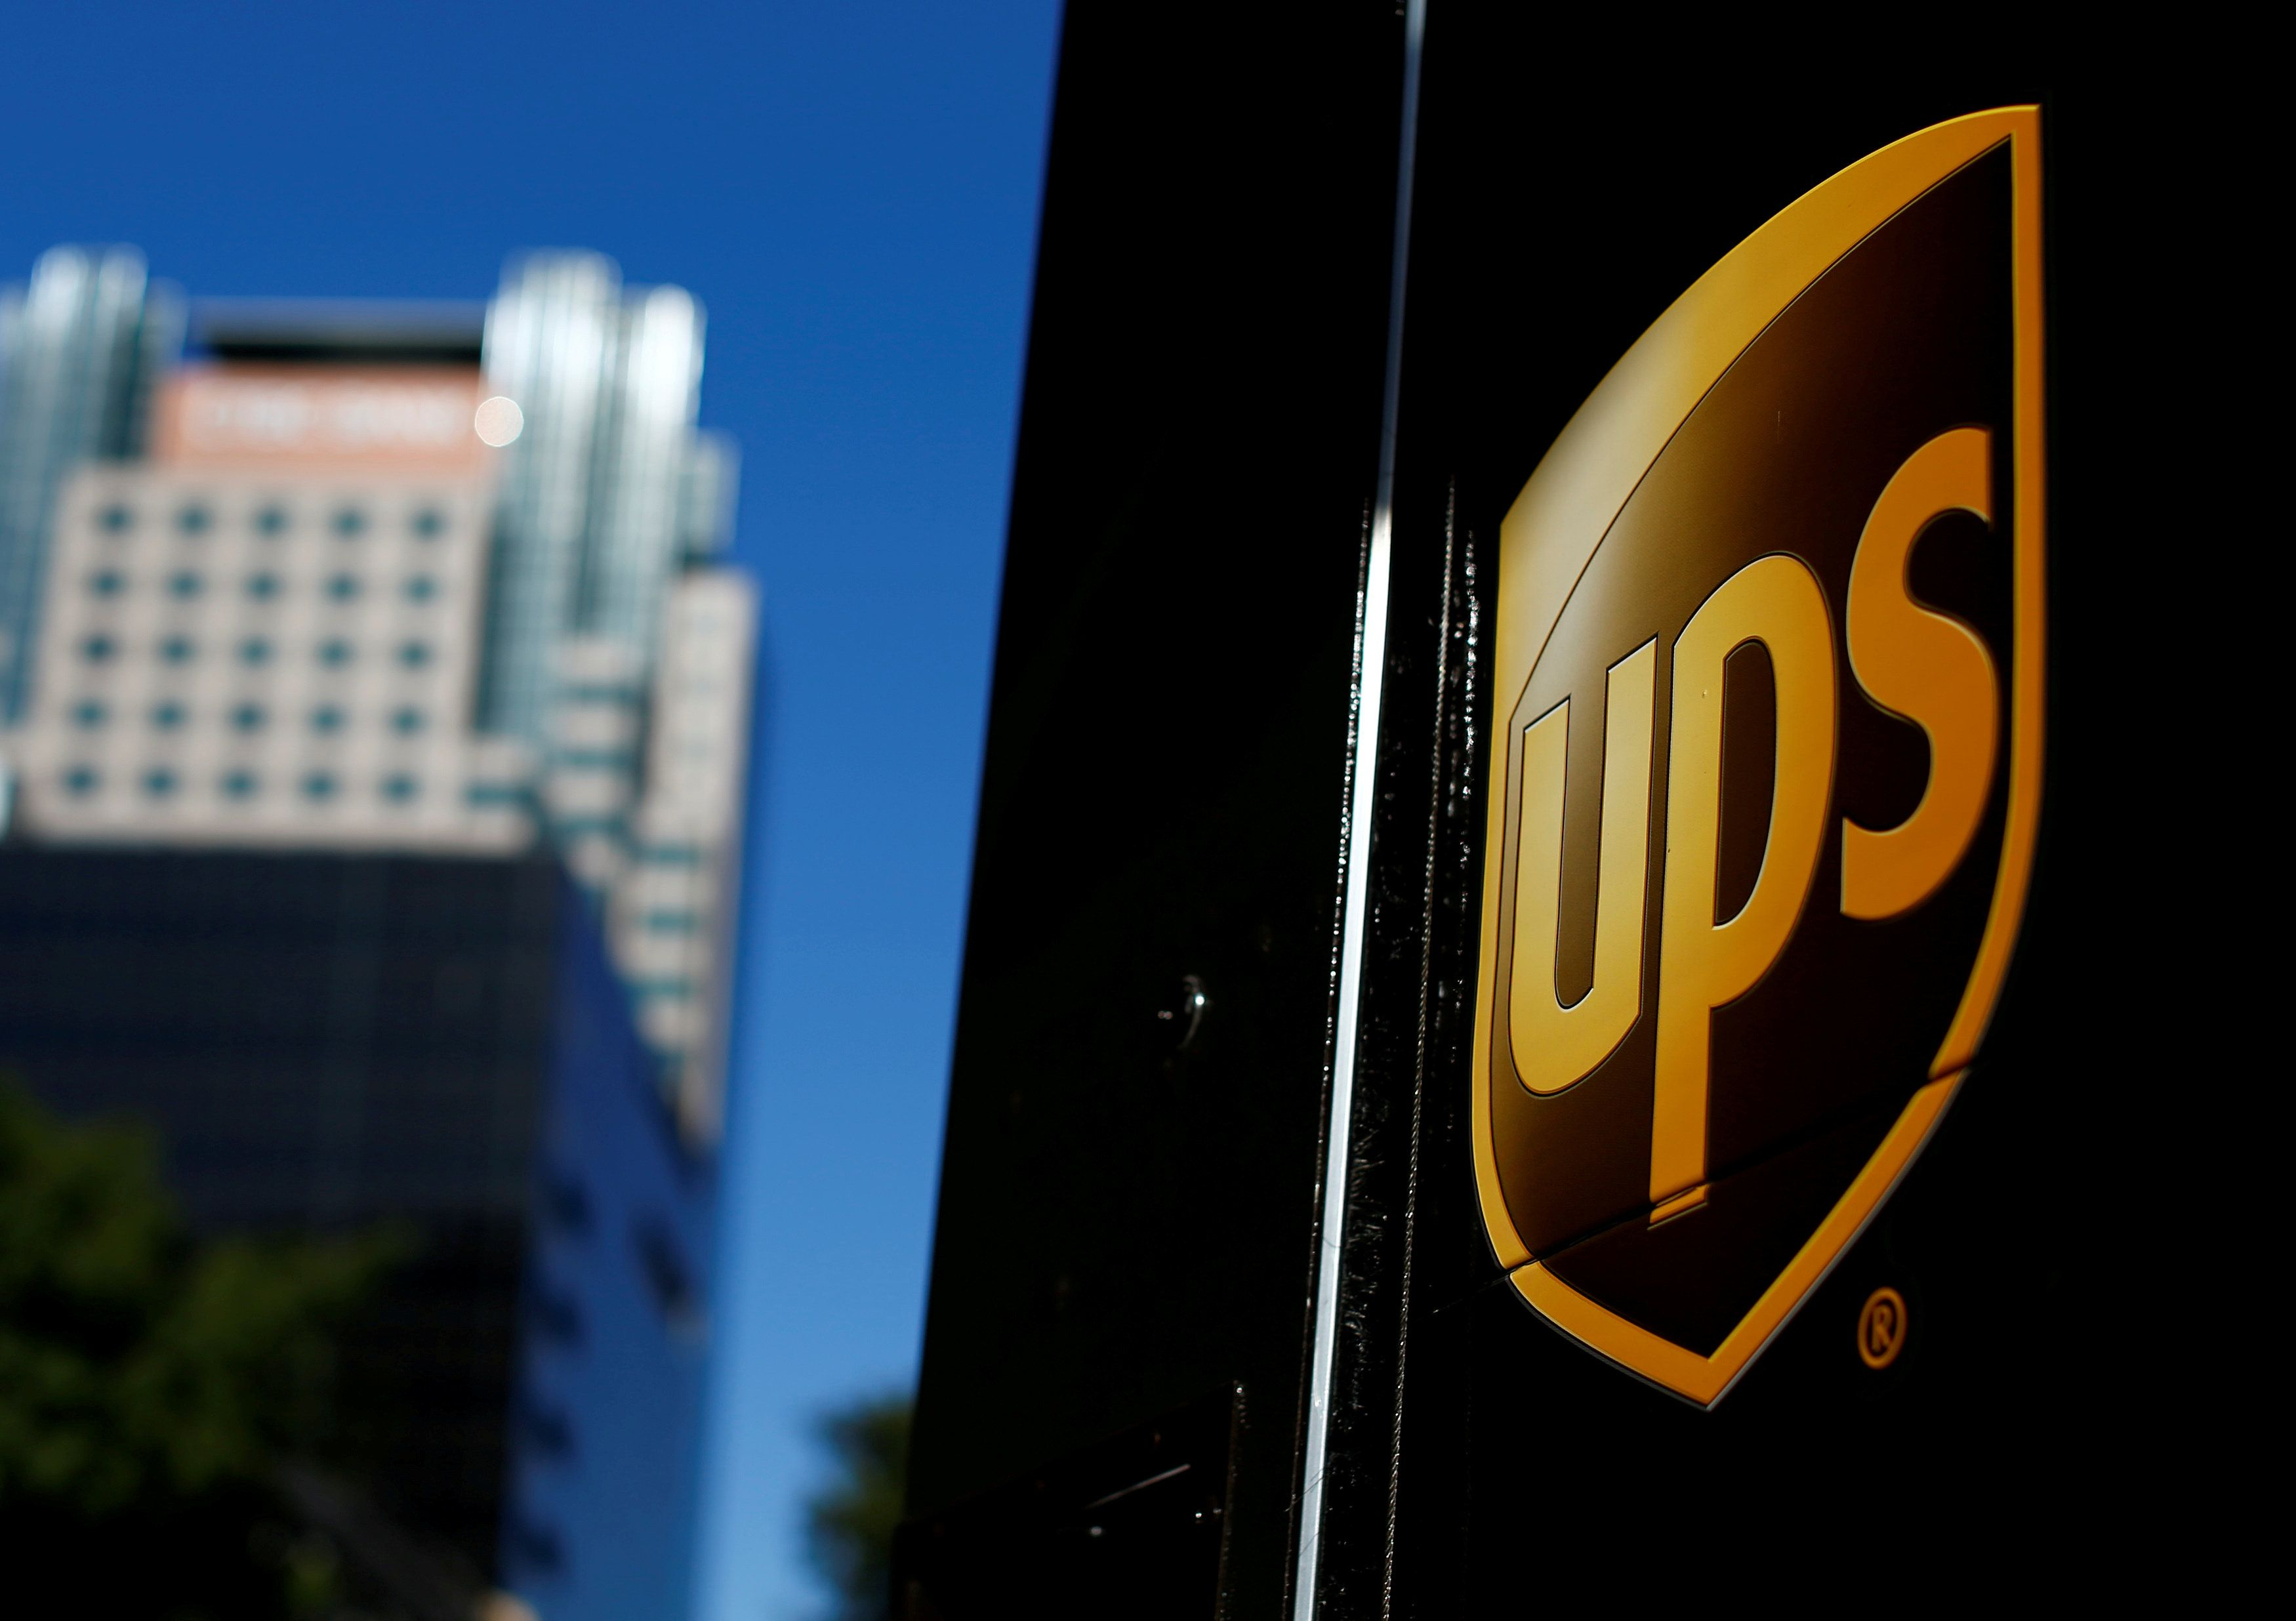 FILE PHOTO: A United Parcel Service (UPS) truck on delivery is pictured in downtown Los Angeles, California, U.S., October 29, 2014. REUTERS/Mike Blake/File Photo